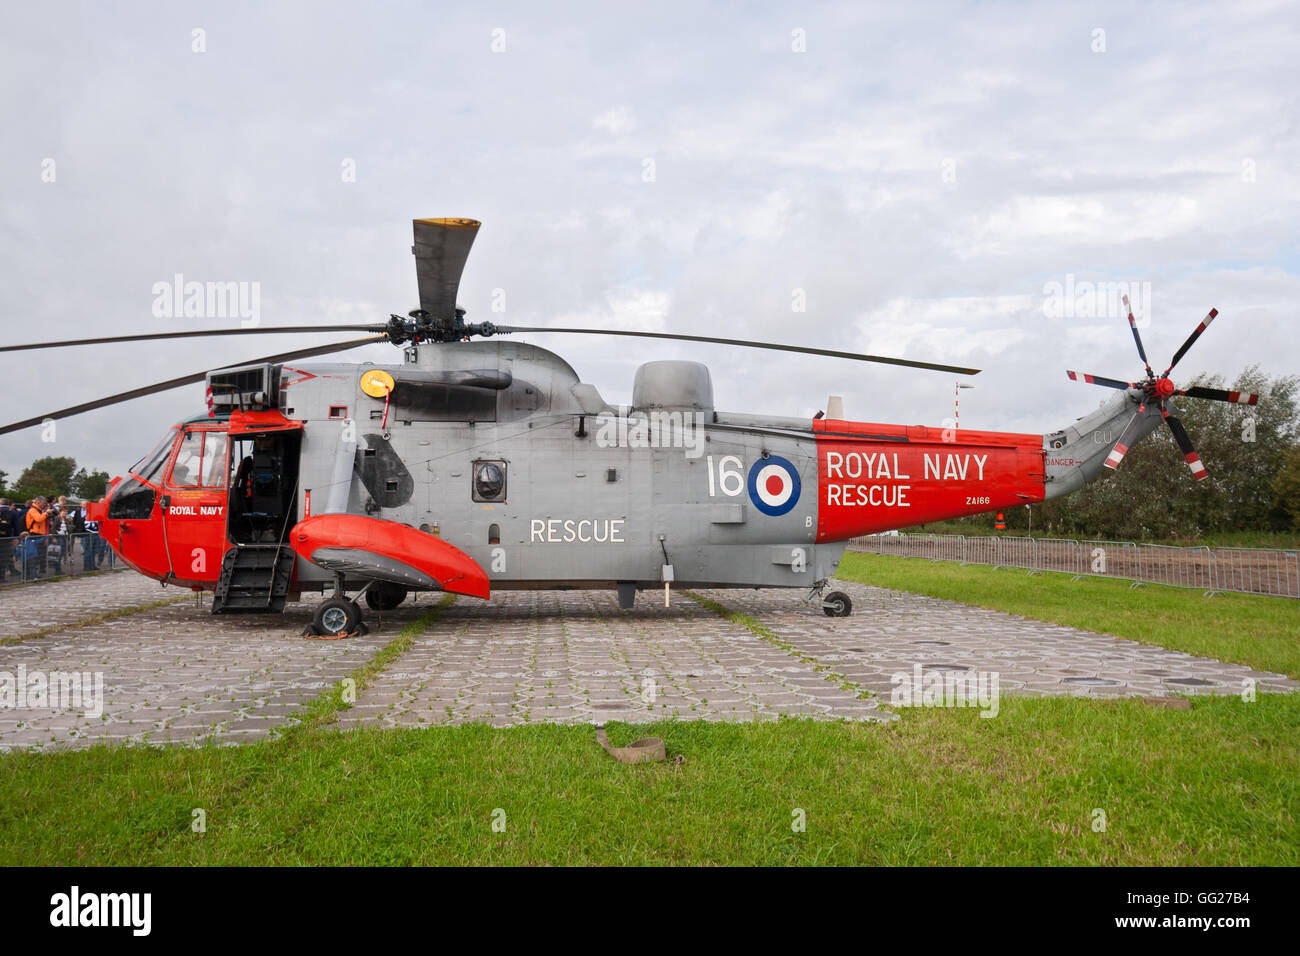 British Royal Navy Sea King rescue helicopter - Stock Image